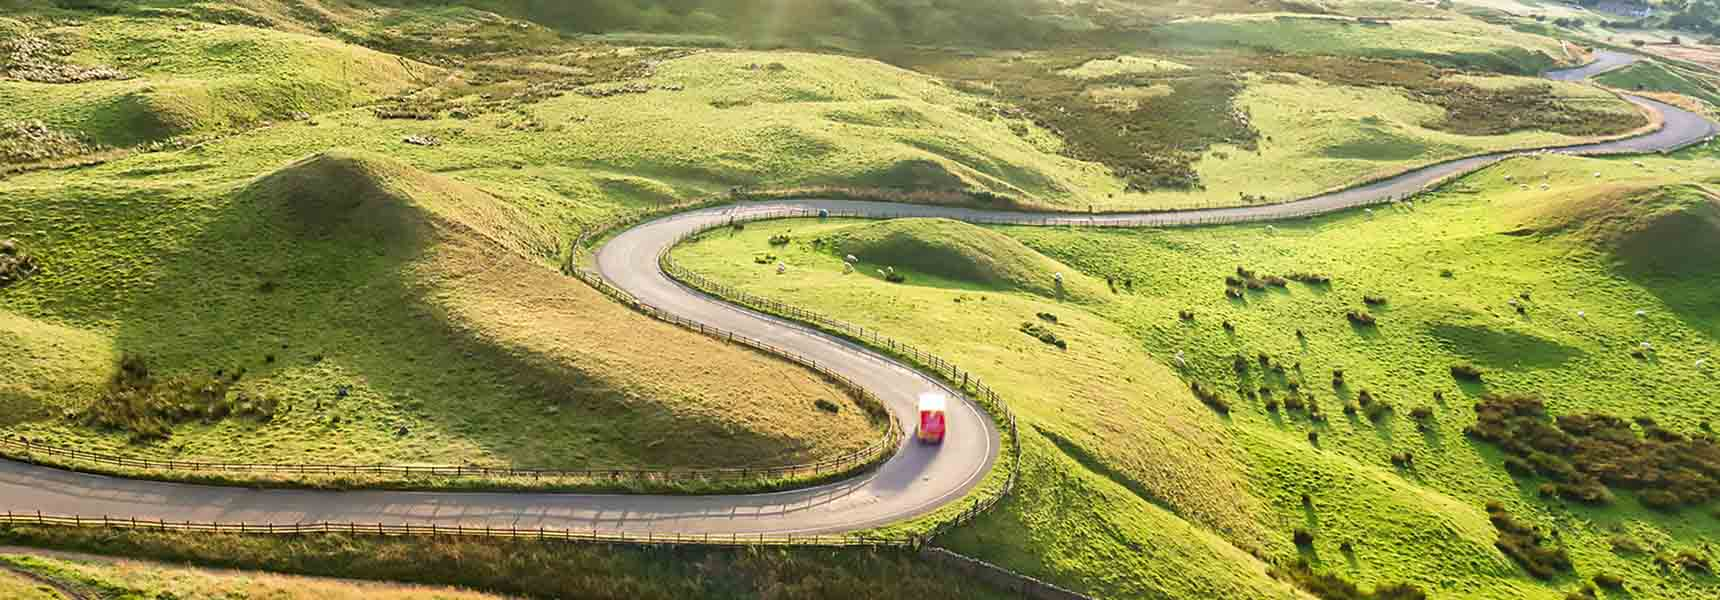 Photo of a winding road indicating the pattern of economic recessions.